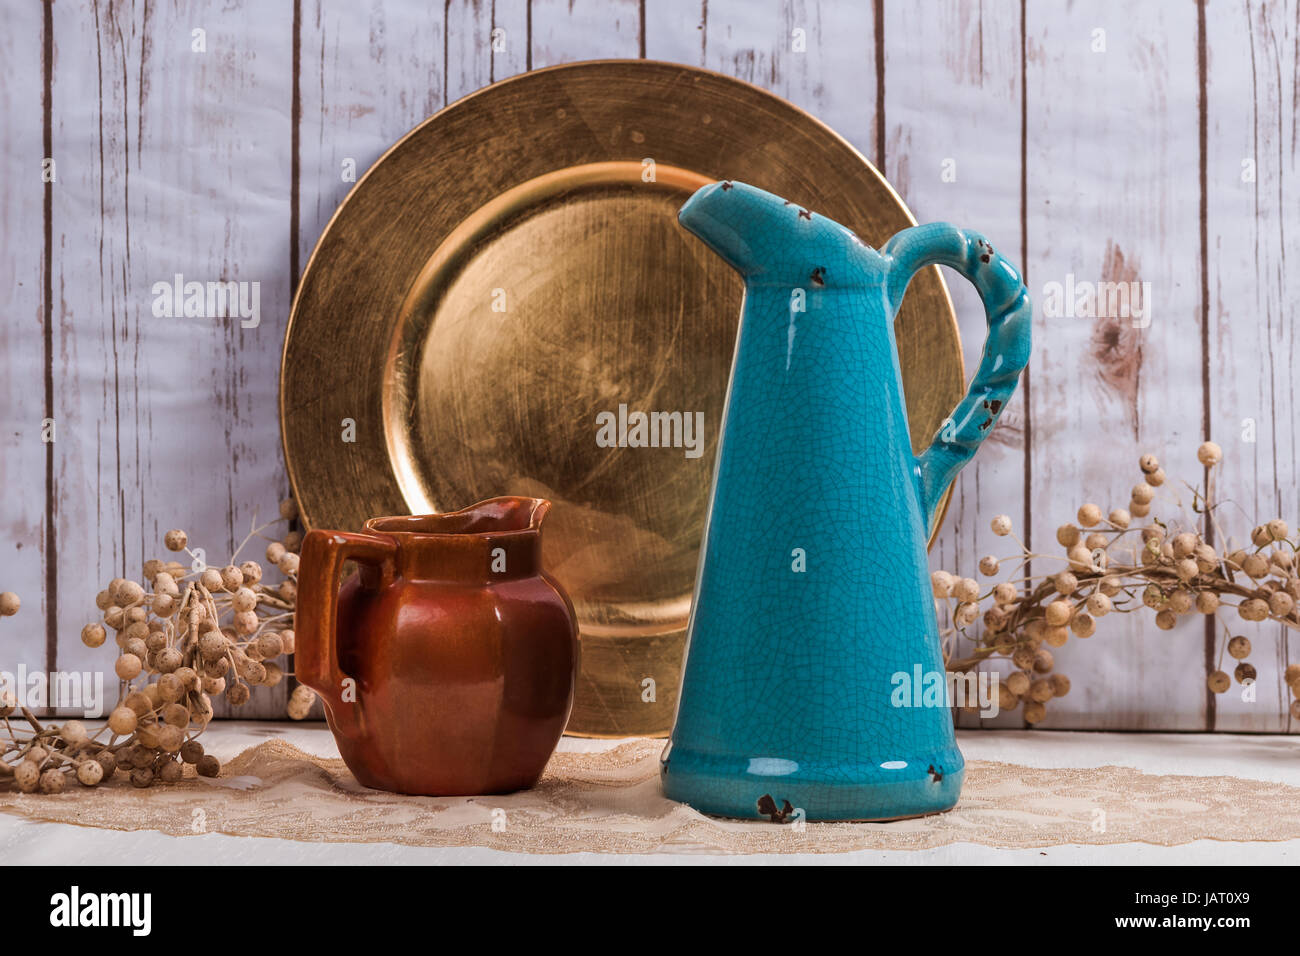 Vintage background with vases and a plate and plant with wood background - Stock Image